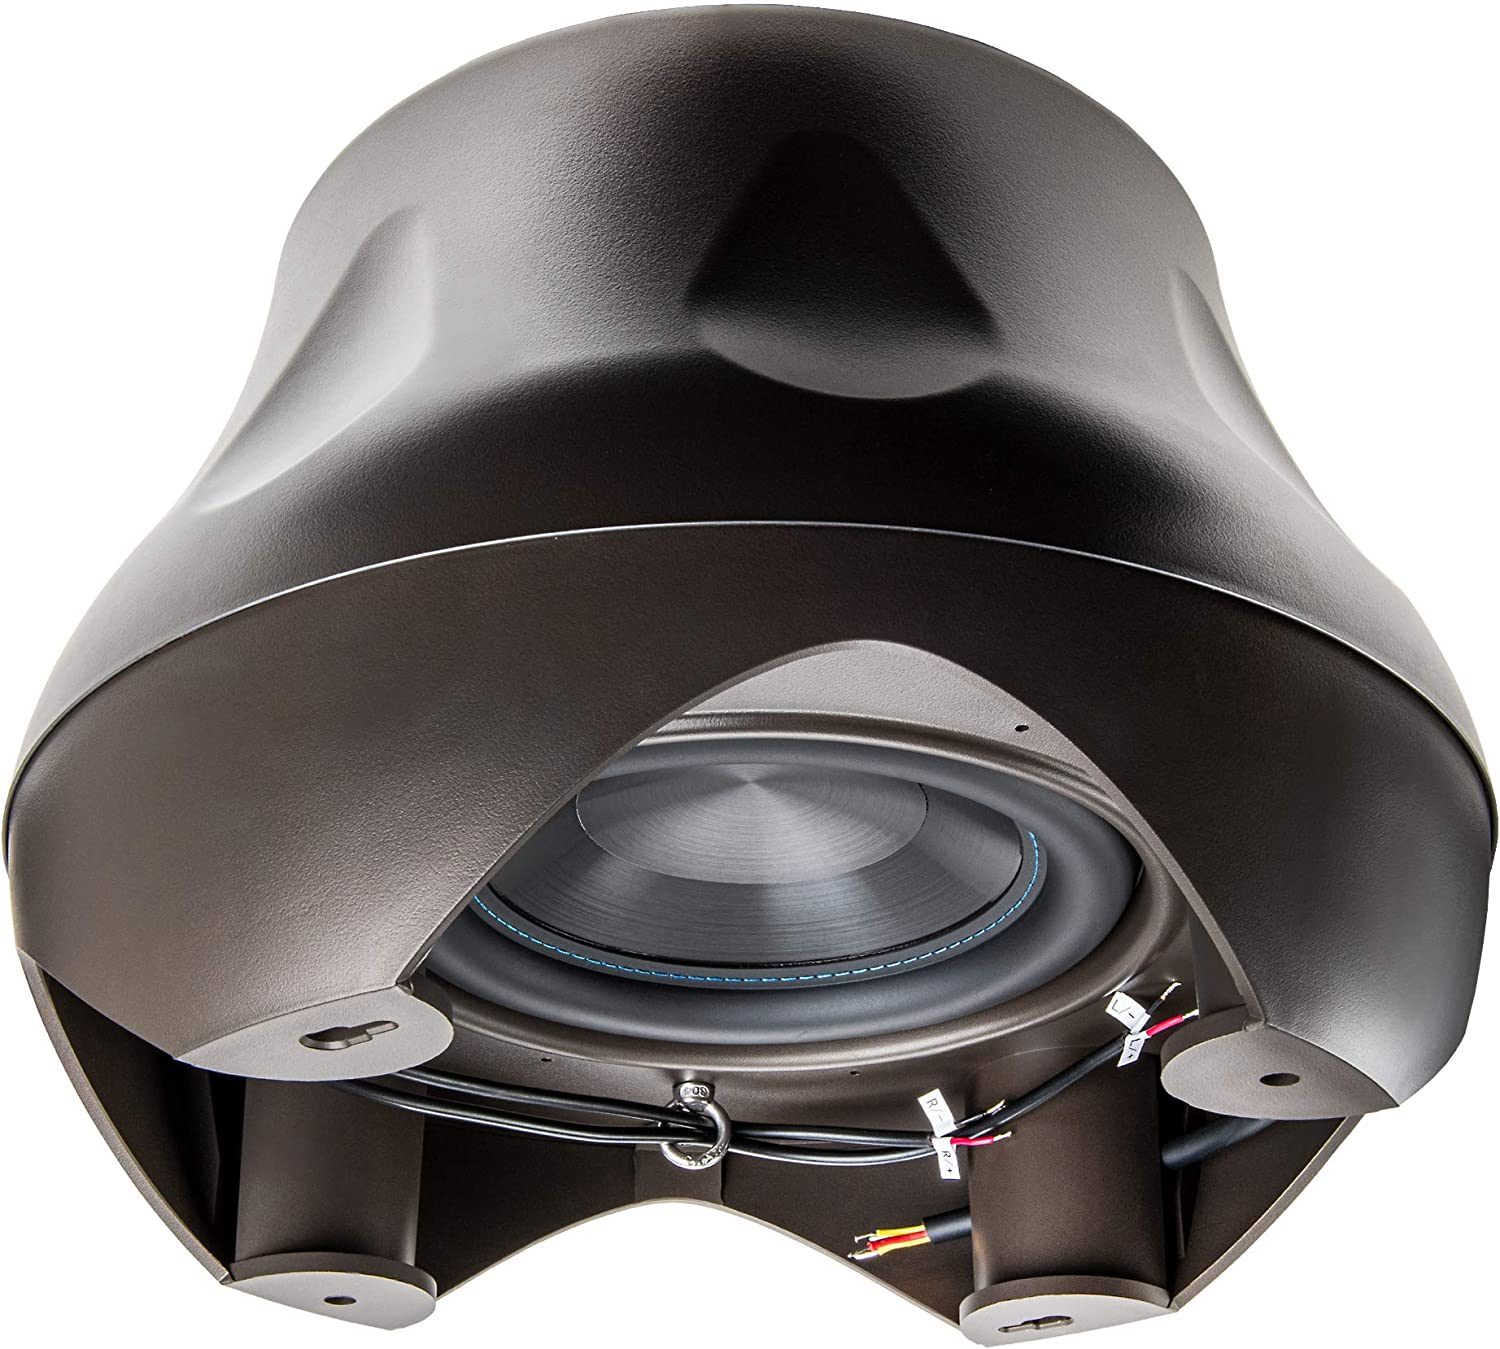 OSD Audio Forza 10 Cross Omni-Directional Weather Resistant 300W Subwoofer w/Internal Crossover and 2X Stereo Satellite Speaker Output